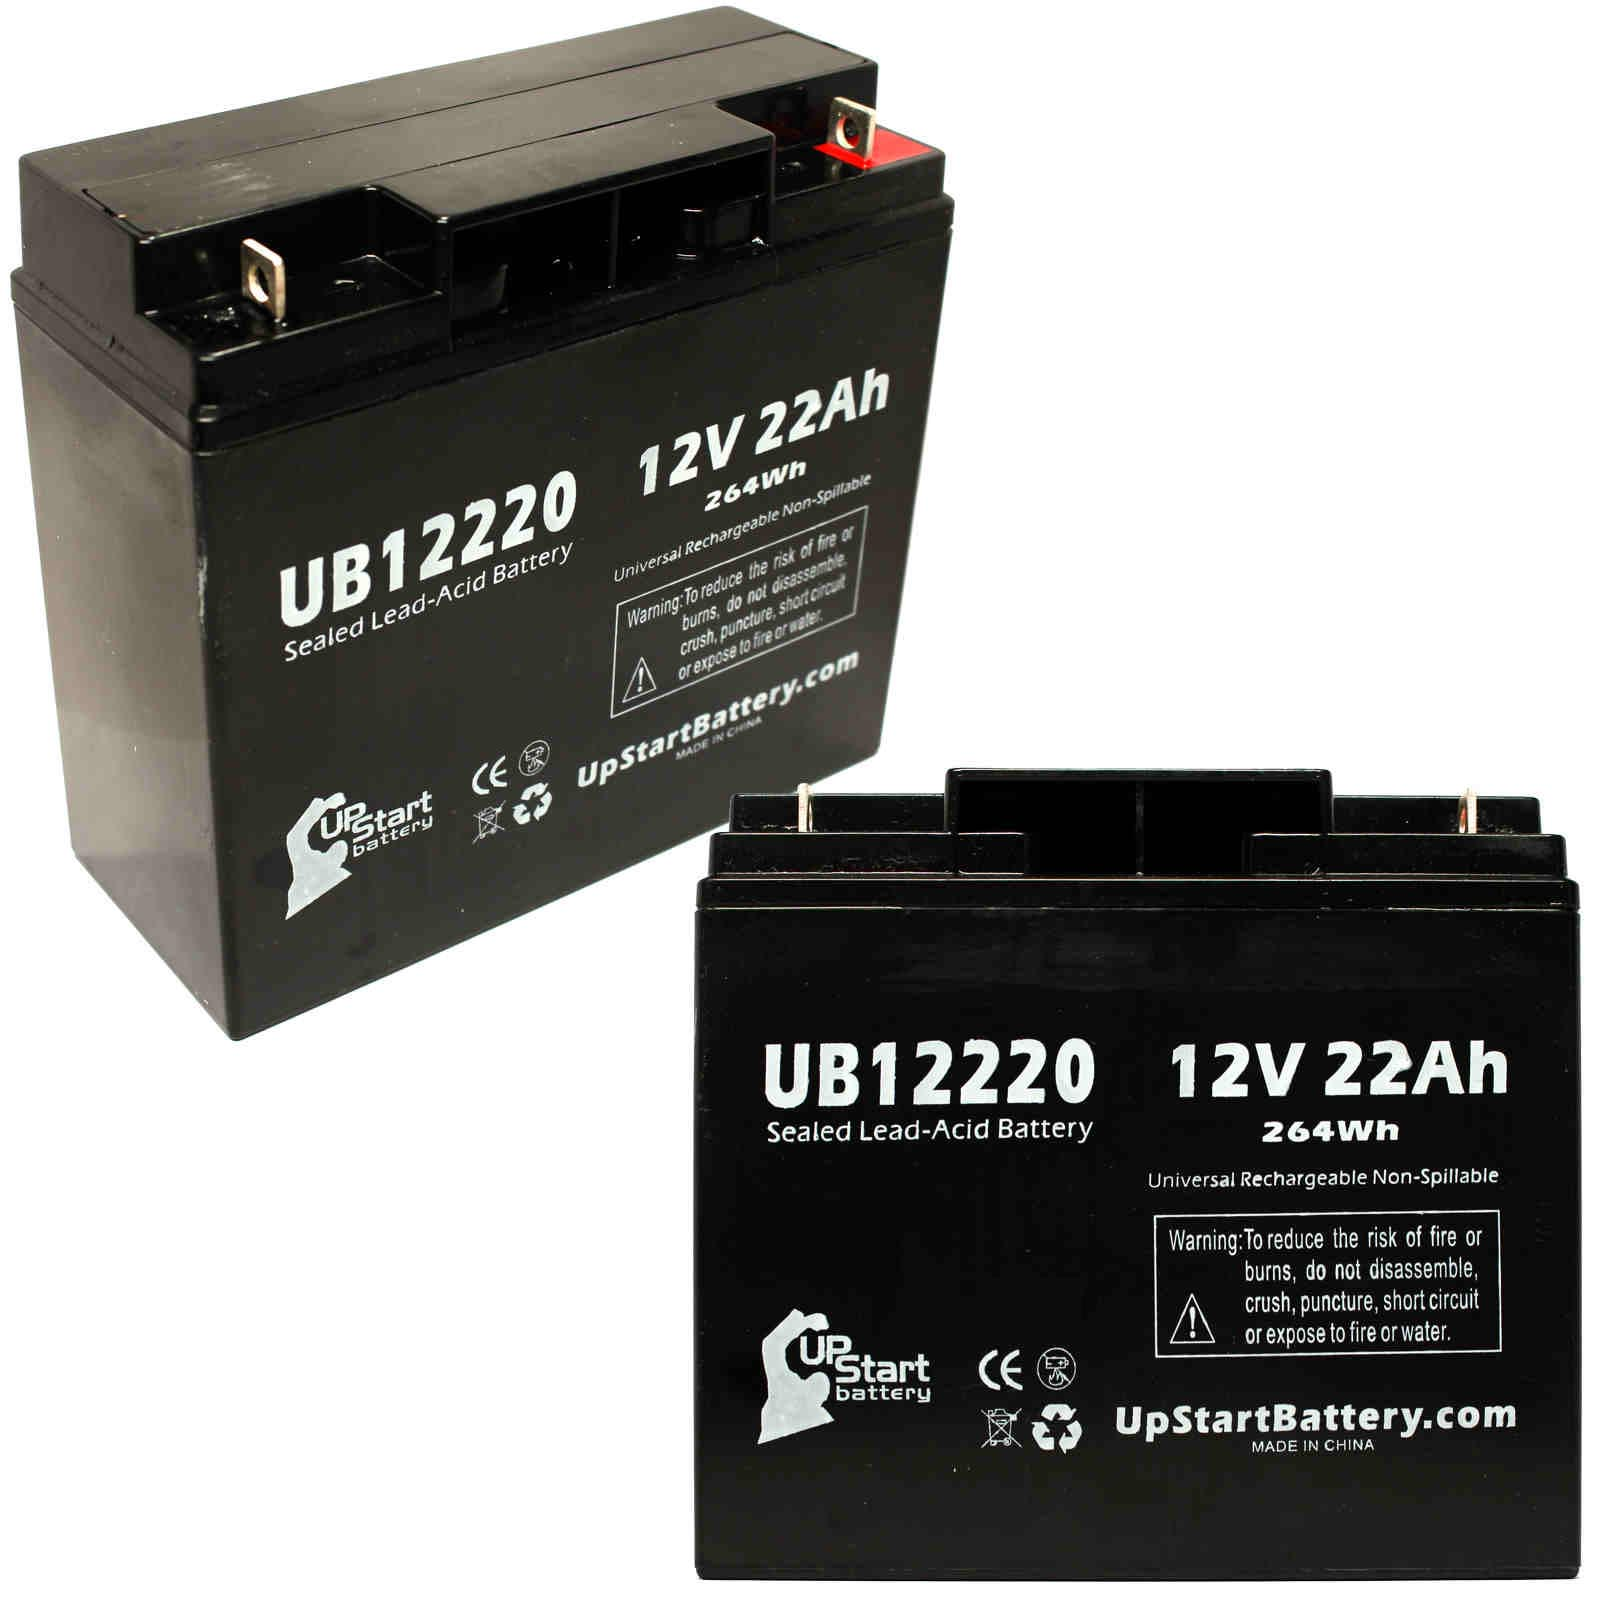 UpStart Battery 2x Pack - Access Battery BED Battery - Replacement UB12220 Universal Sealed Lead Acid Battery (12V, 22Ah, T4 Terminal,) at Sears.com